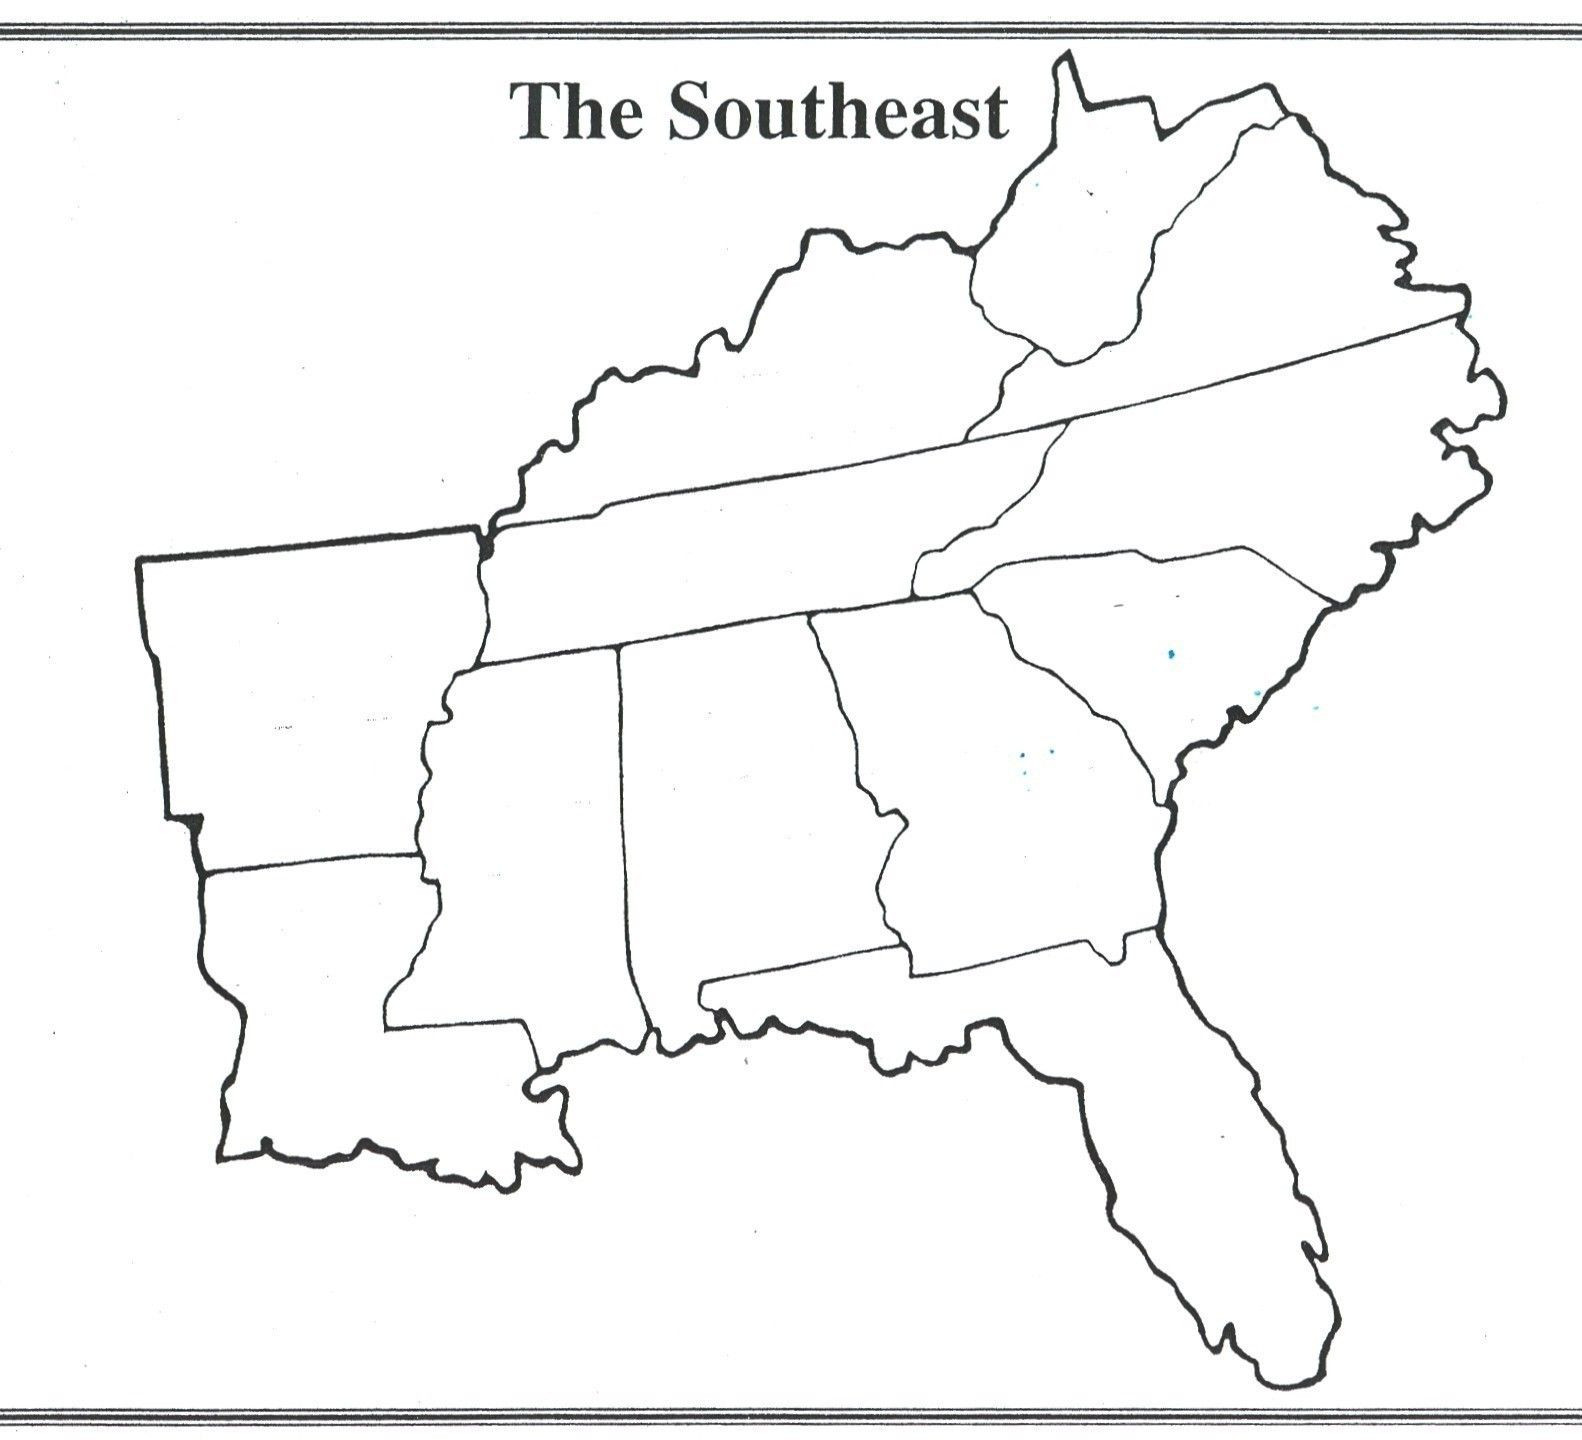 United States Capitals Quiz Printable Interesting Blank Us Map Quiz Printable south Eastern States